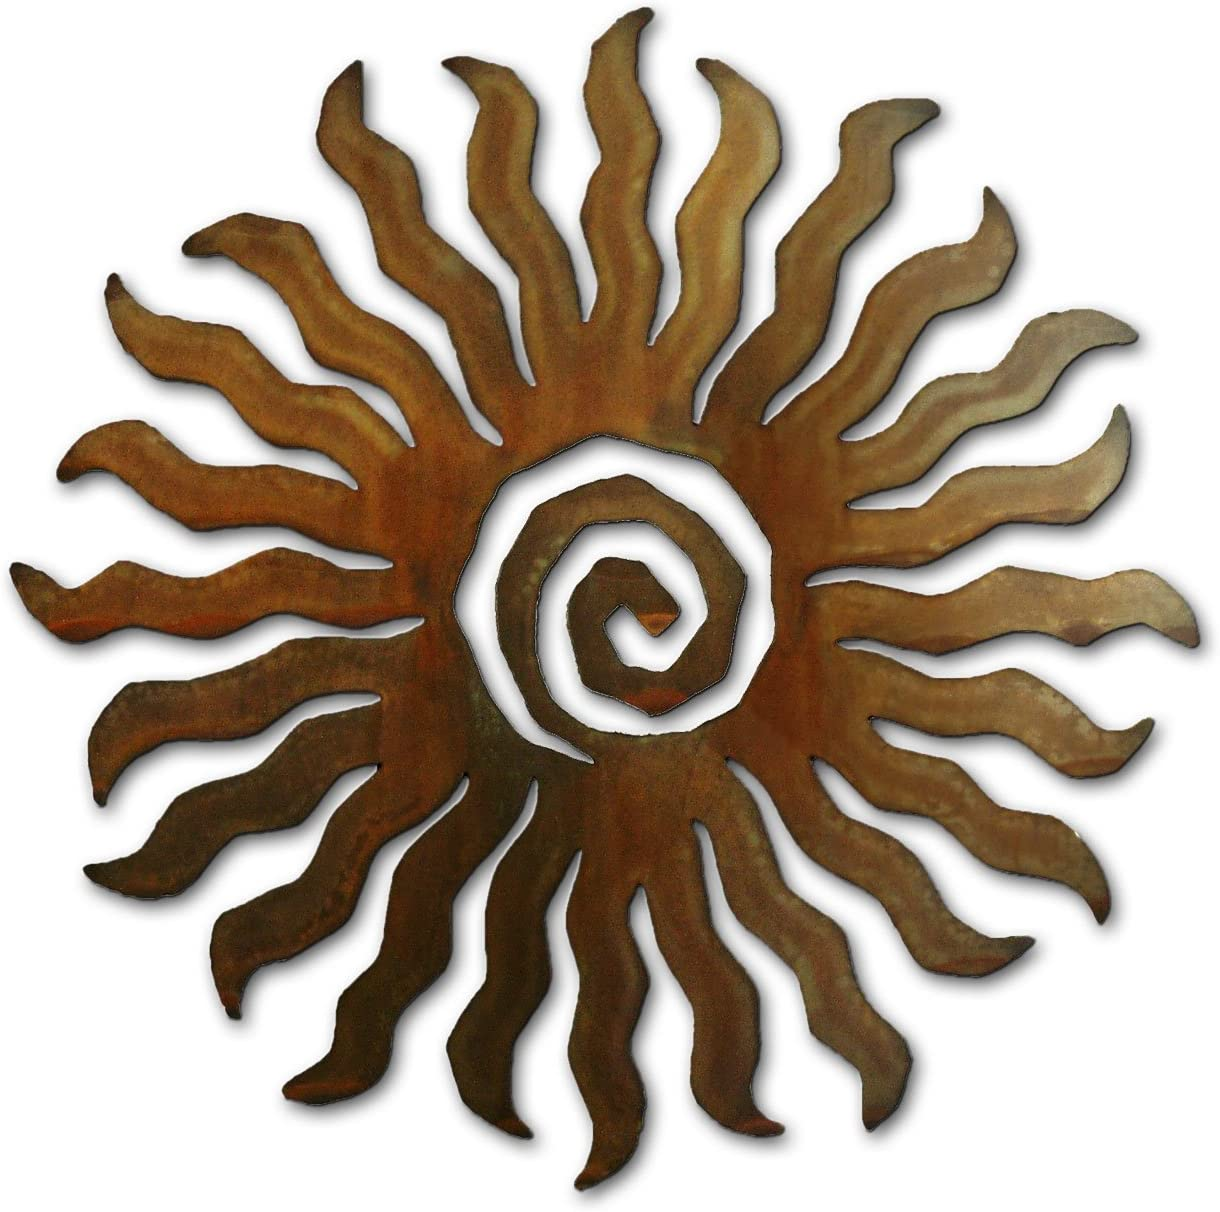 Spiral Sun – Two Dozen Rays Metal Wall Art – 30 inches – Rust Finish – Crafted in USA